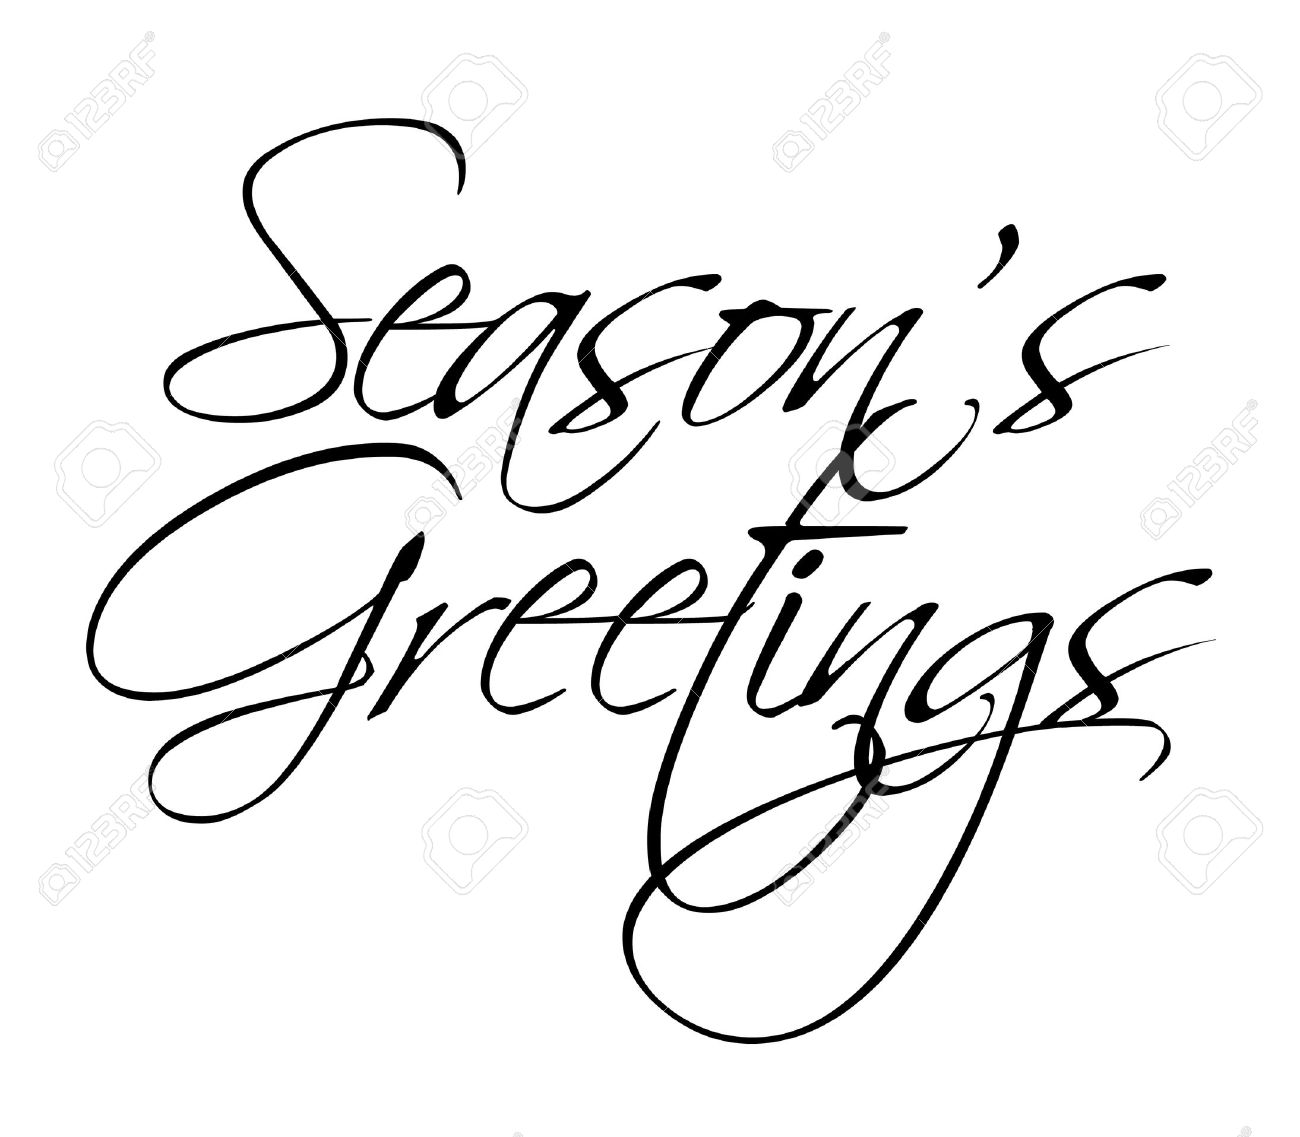 Seasons greetings vector type for seasonal use royalty free seasons greetings vector type for seasonal use stock vector 8283765 m4hsunfo